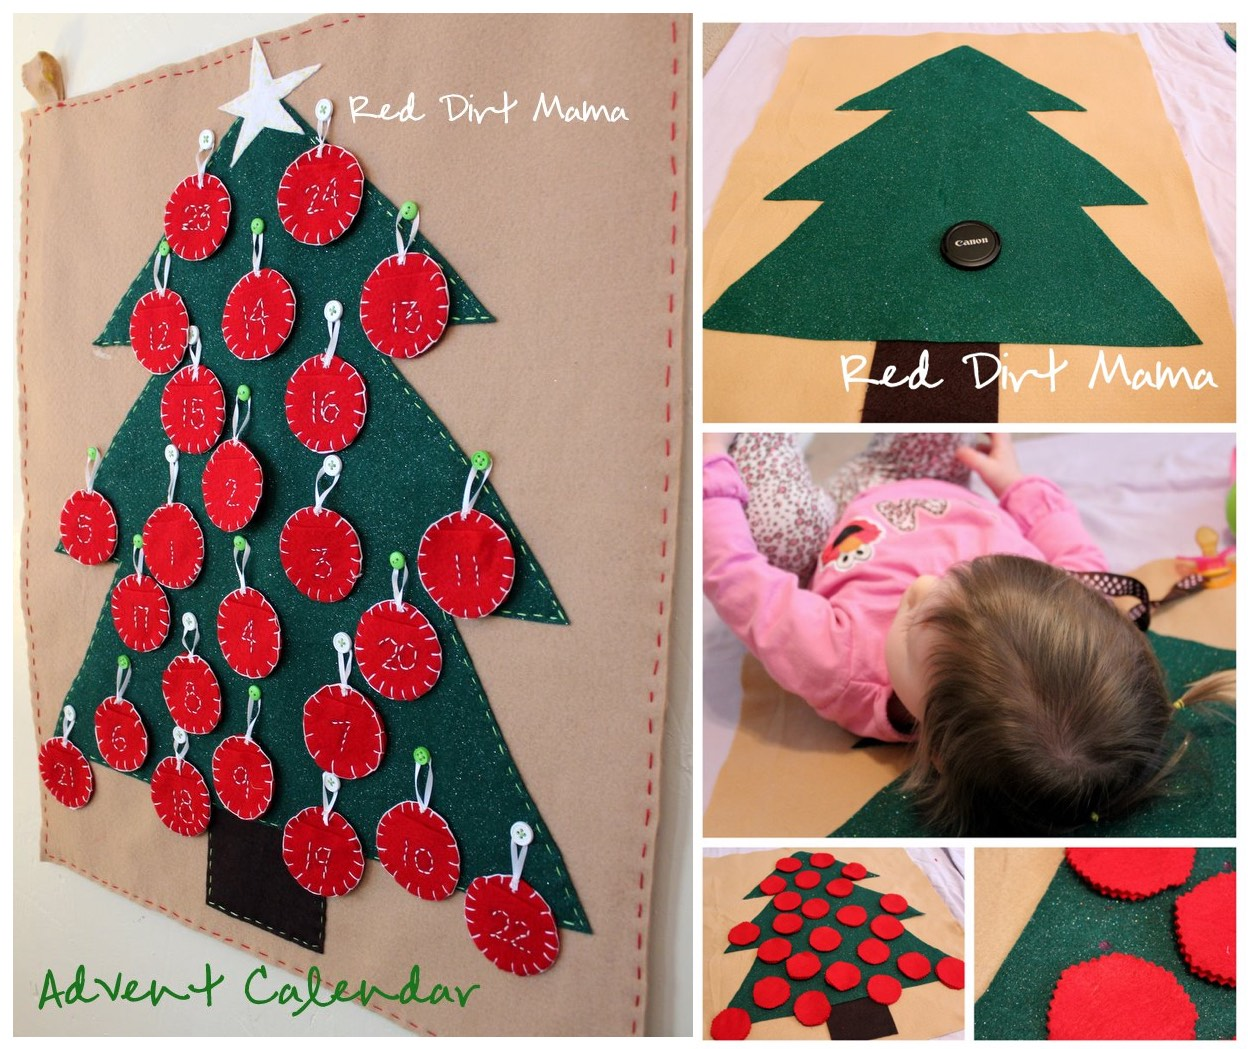 Top 15 ideas for the best diy advent calendar for kids for Diy christmas advent calendar ideas